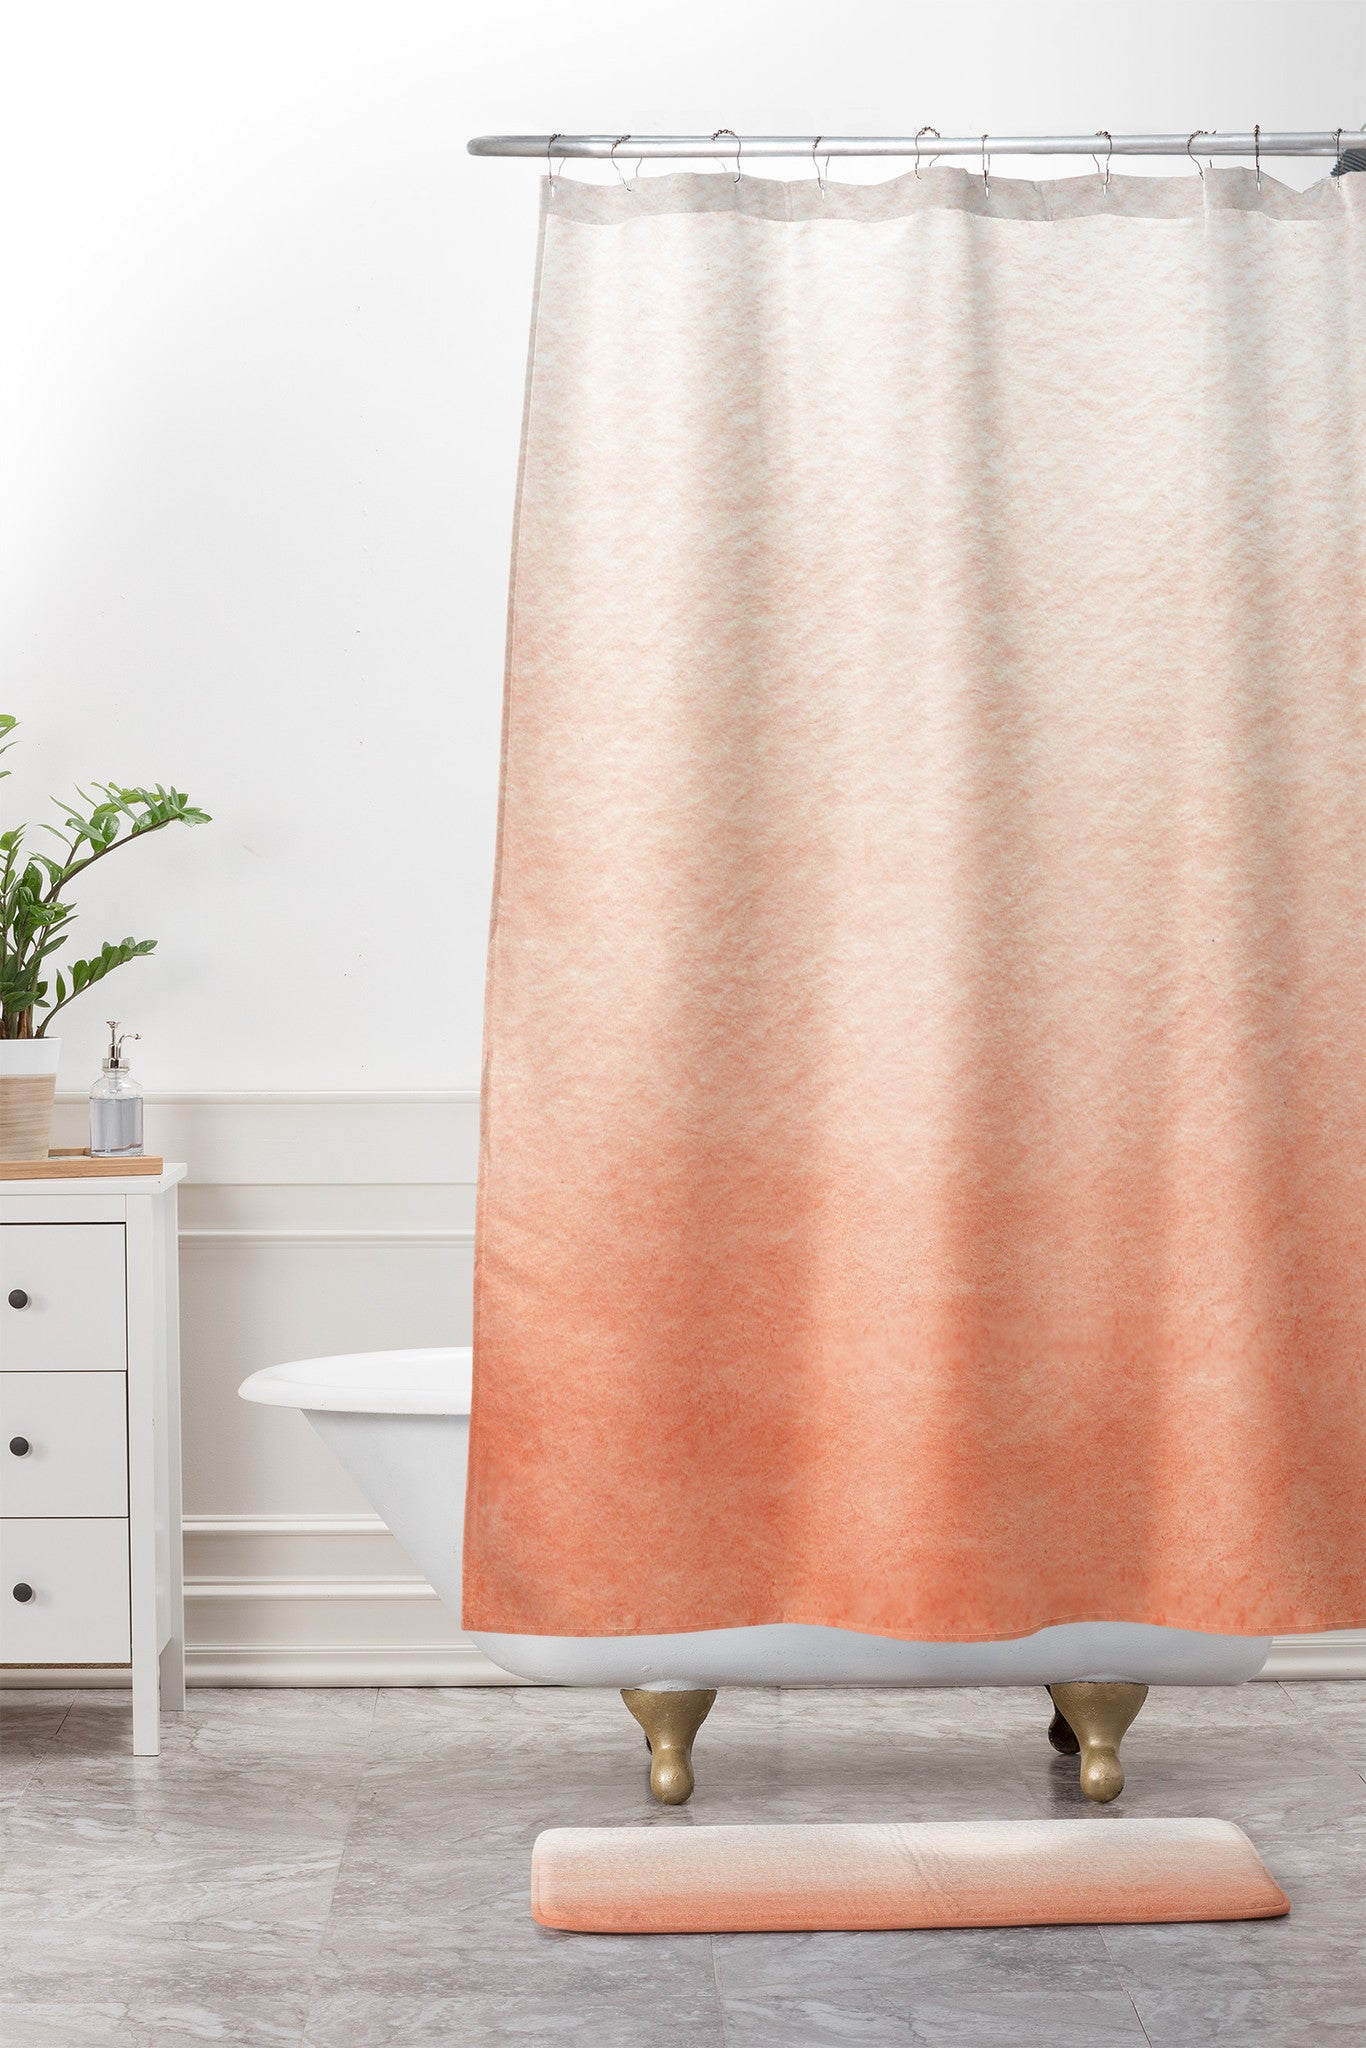 Peach Ombre Shower Curtain And Mat Social Proper